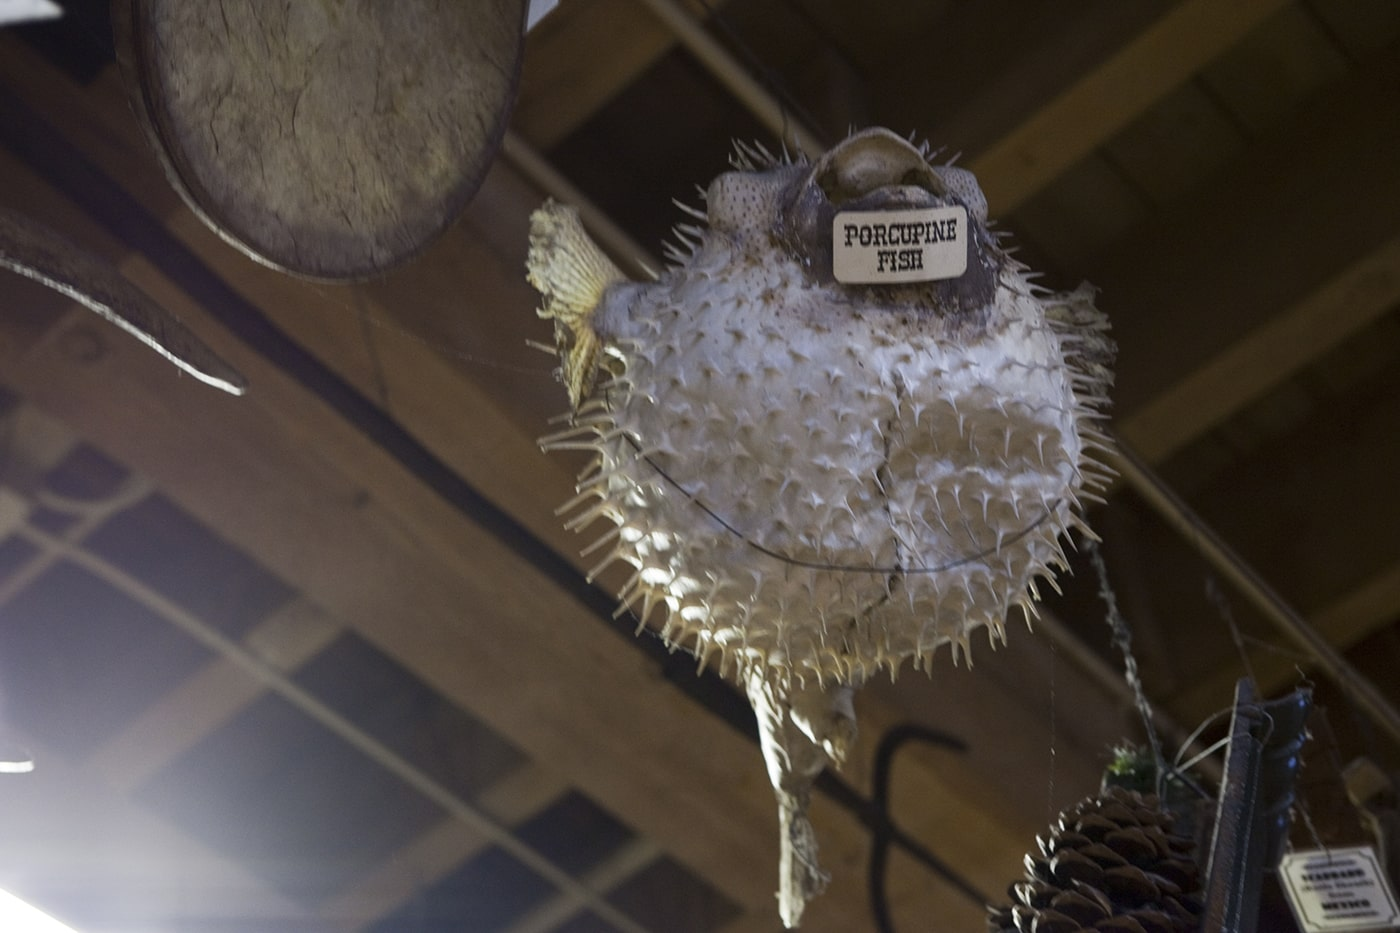 Porcupine Fish at Ye Olde Curiosity Shoppe in Seattle, Washington